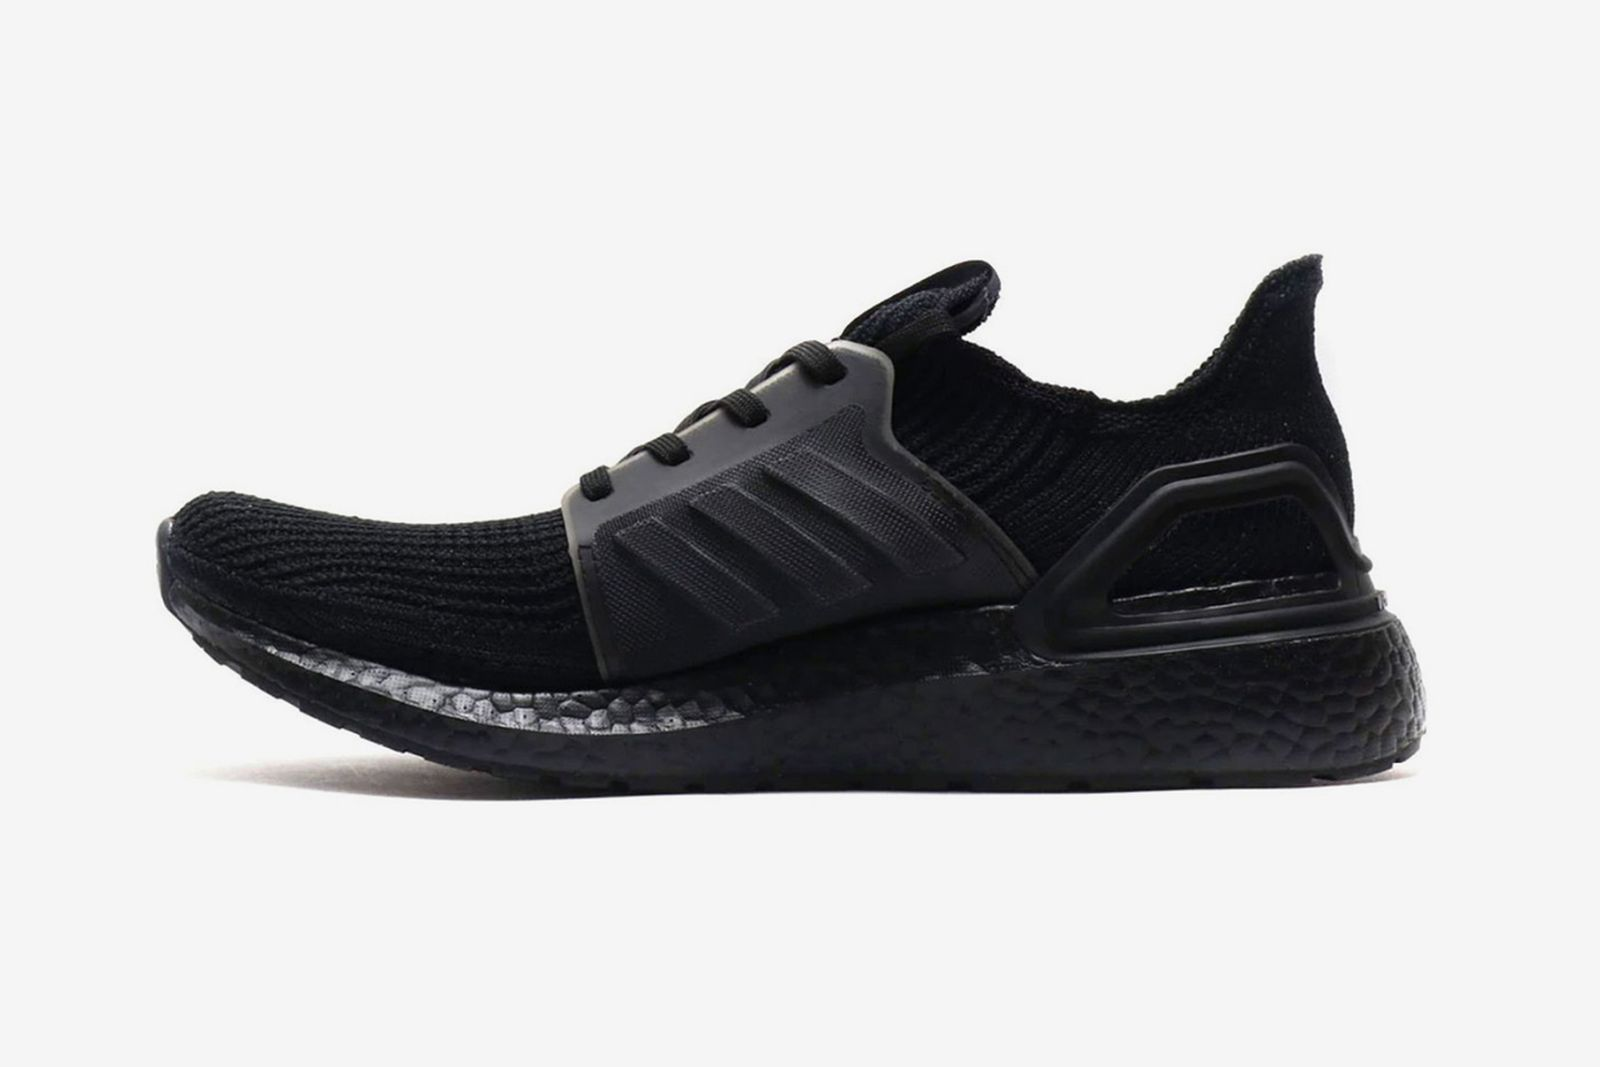 adidas ultraboost 19 core black release date price